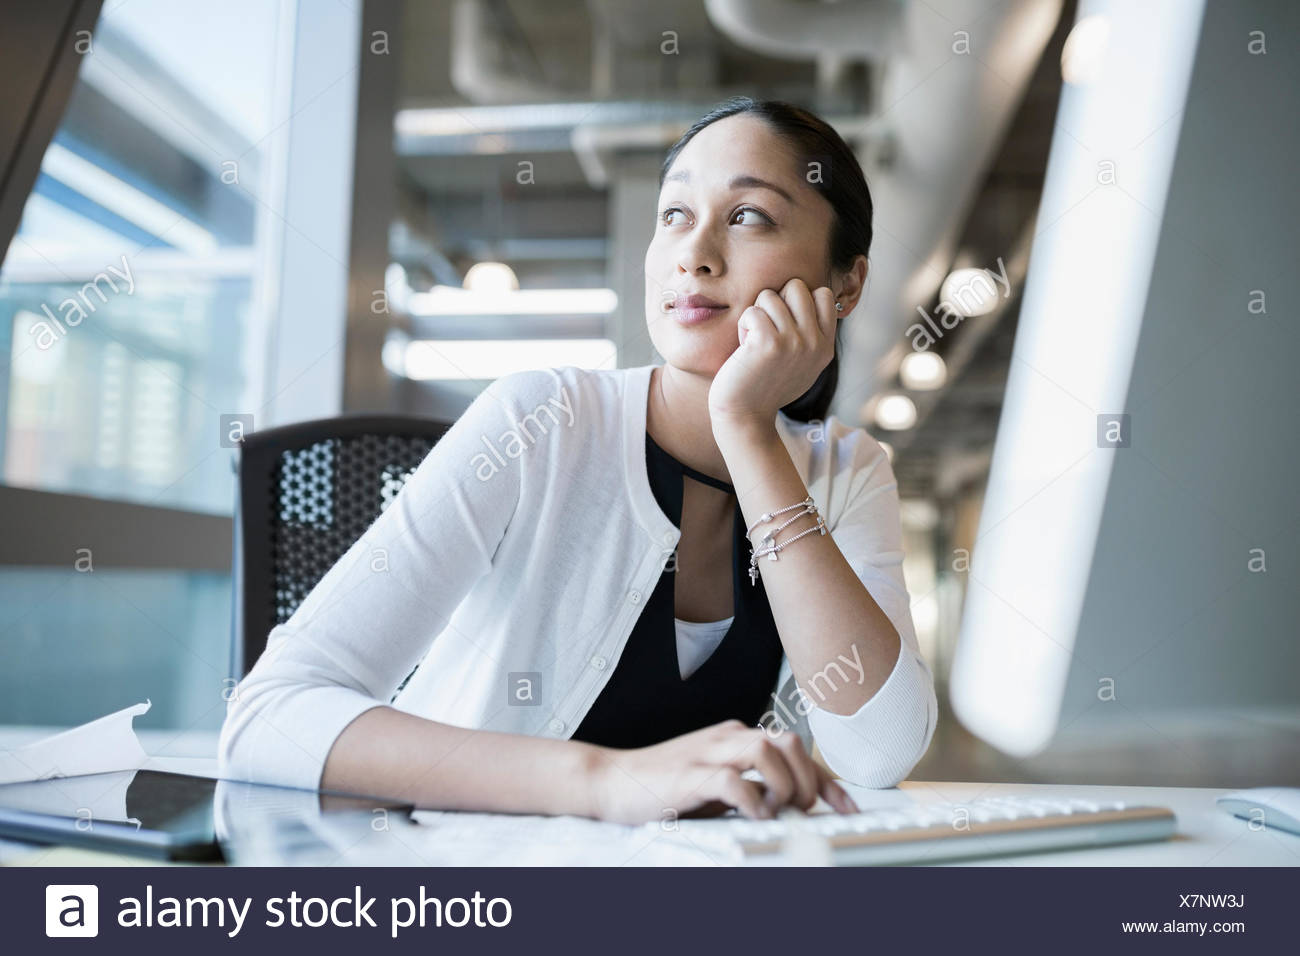 Pensive businesswoman looking out window - Stock Image